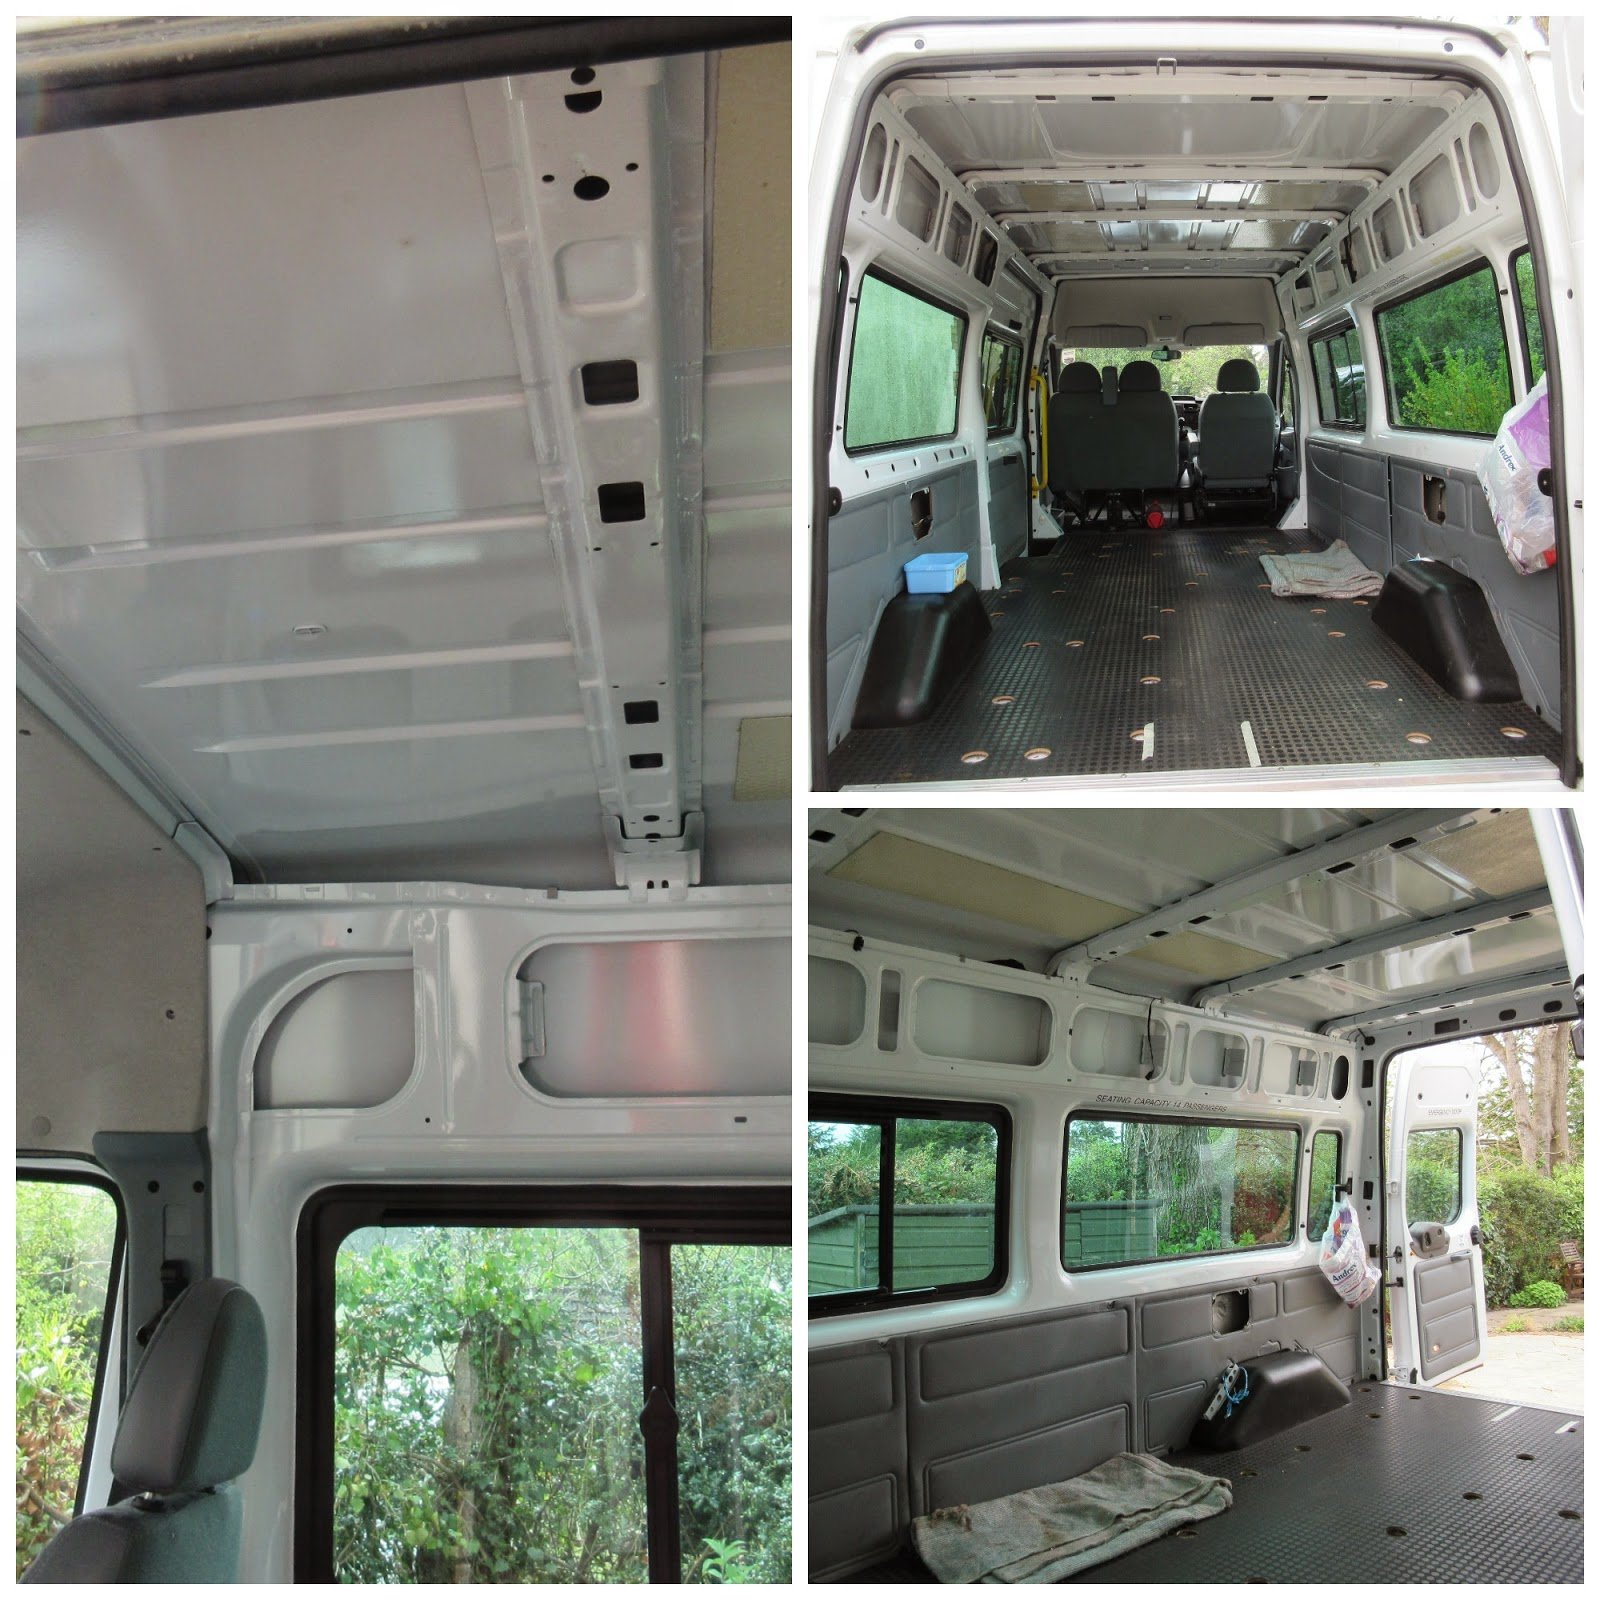 Conversion of van to camper van